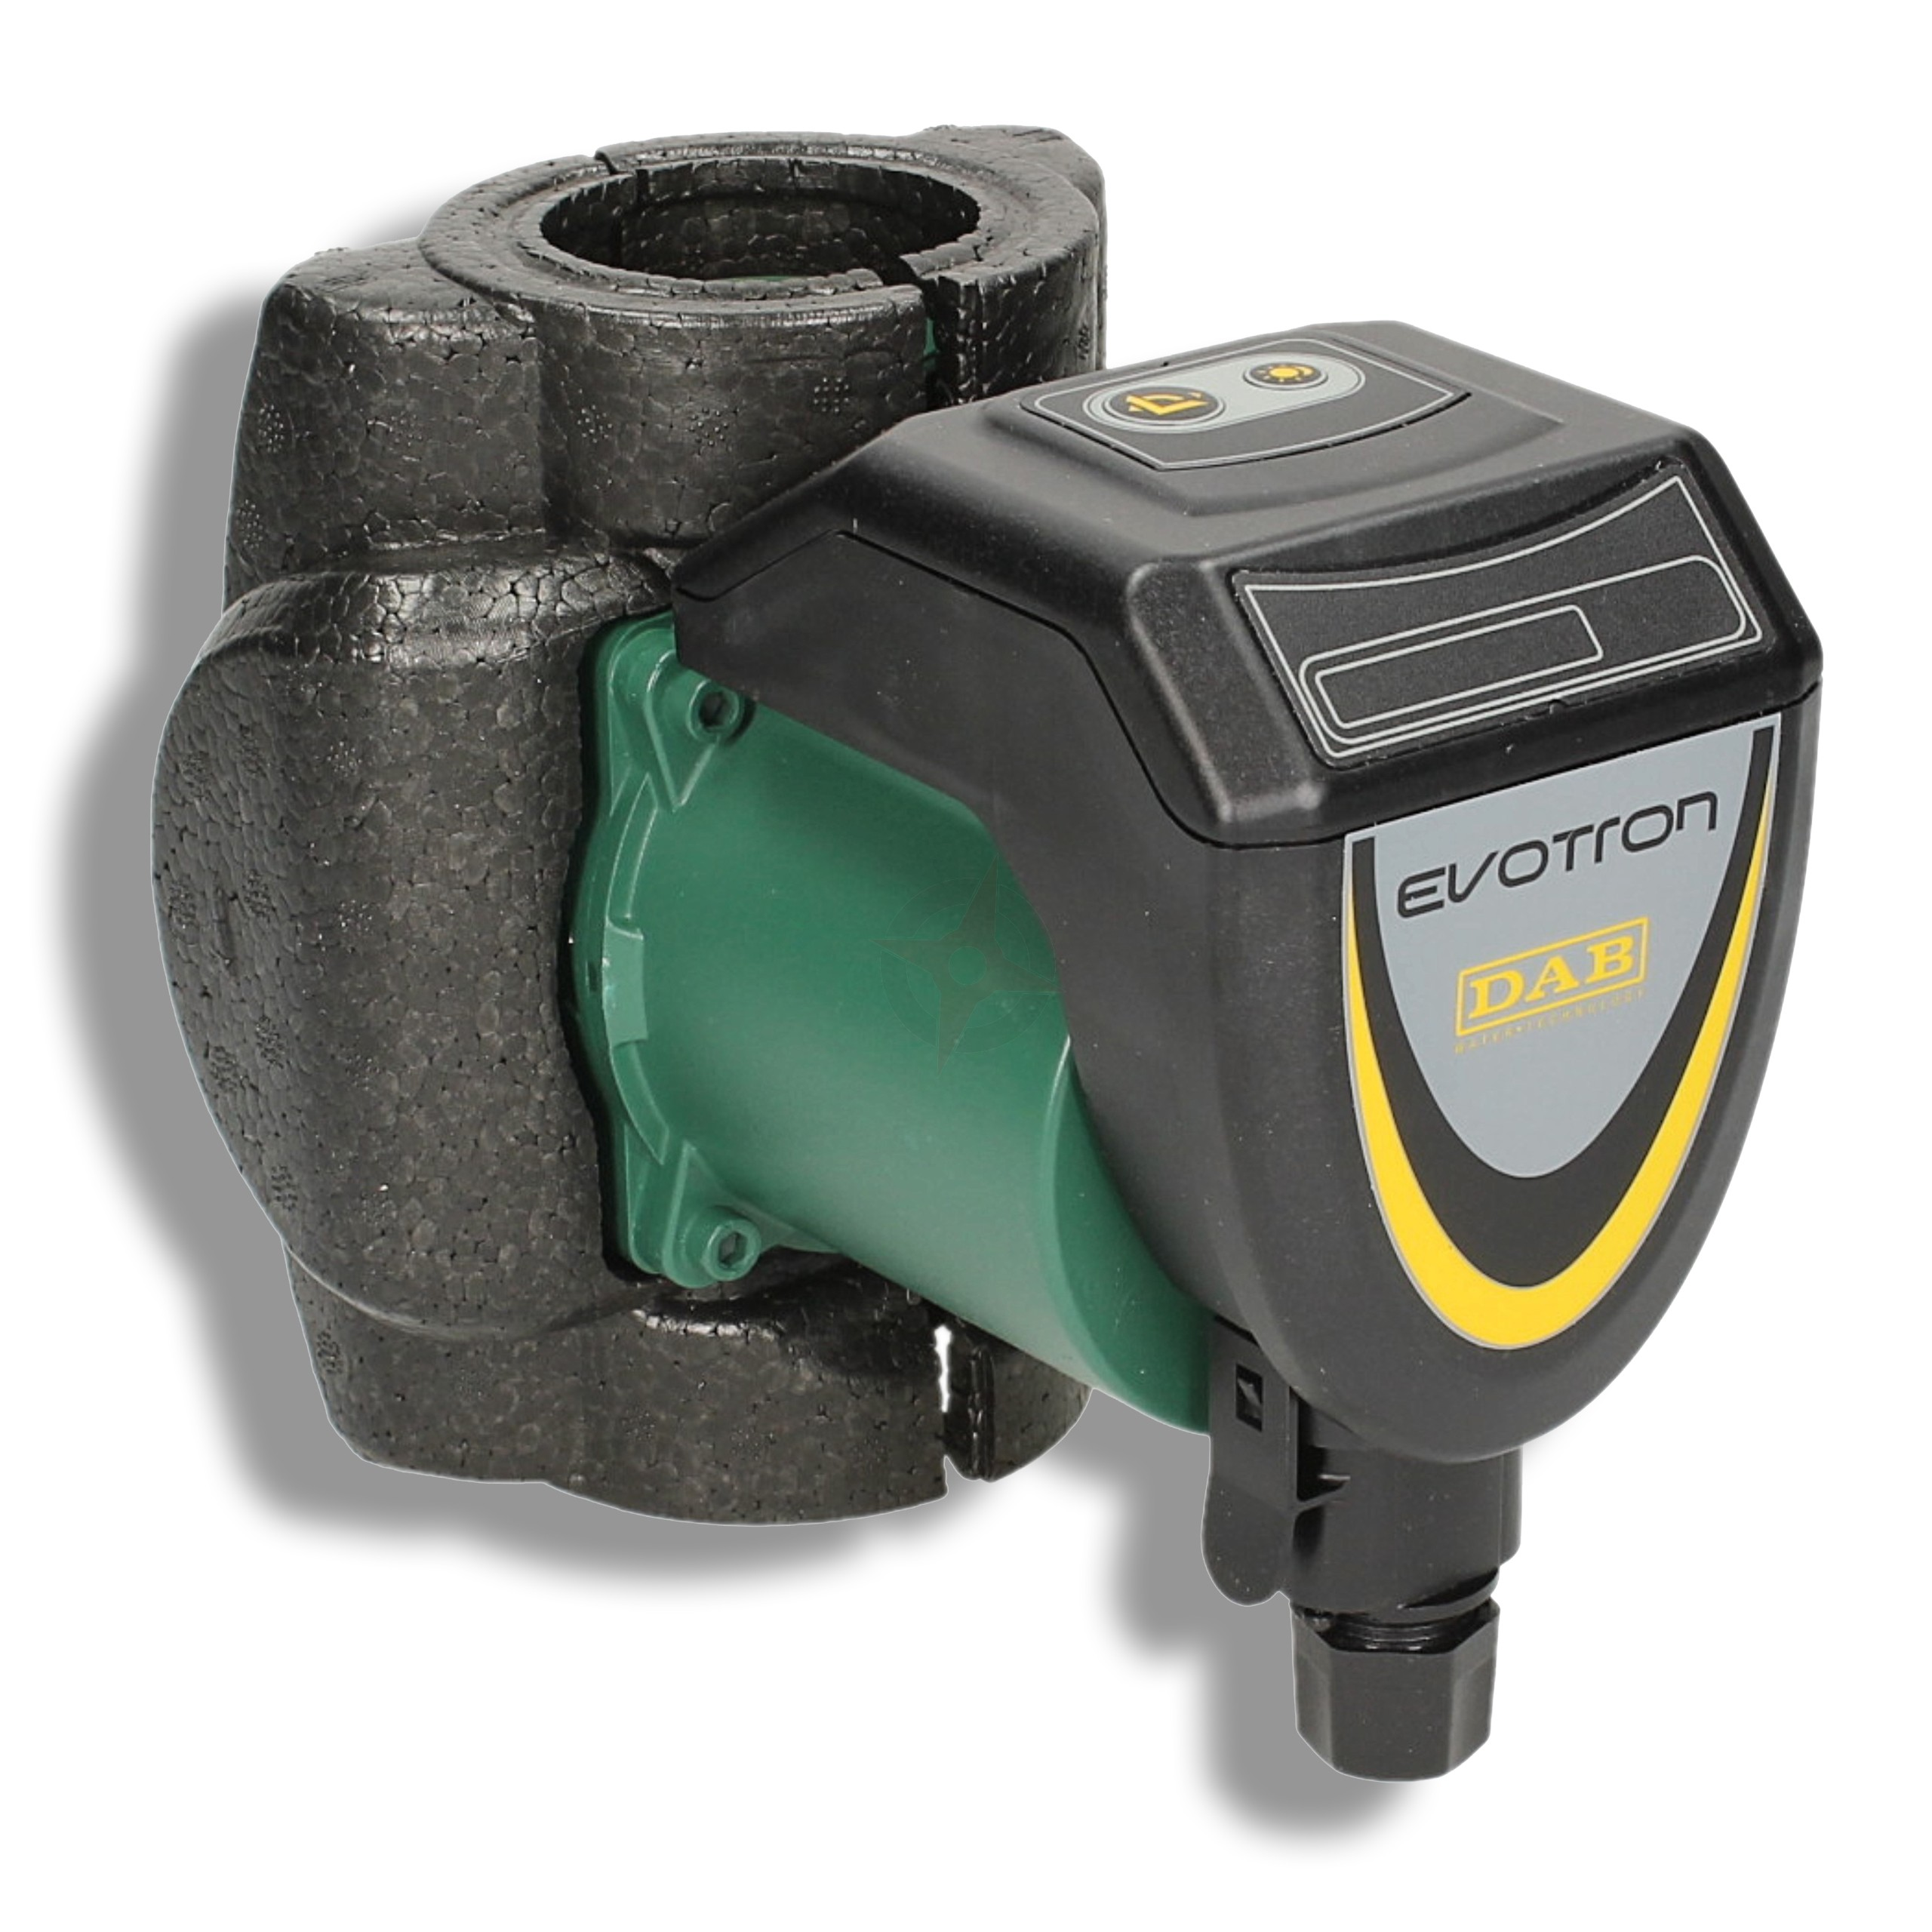 DAB Evotron 40/130 4 Metre Head Circulating Pump